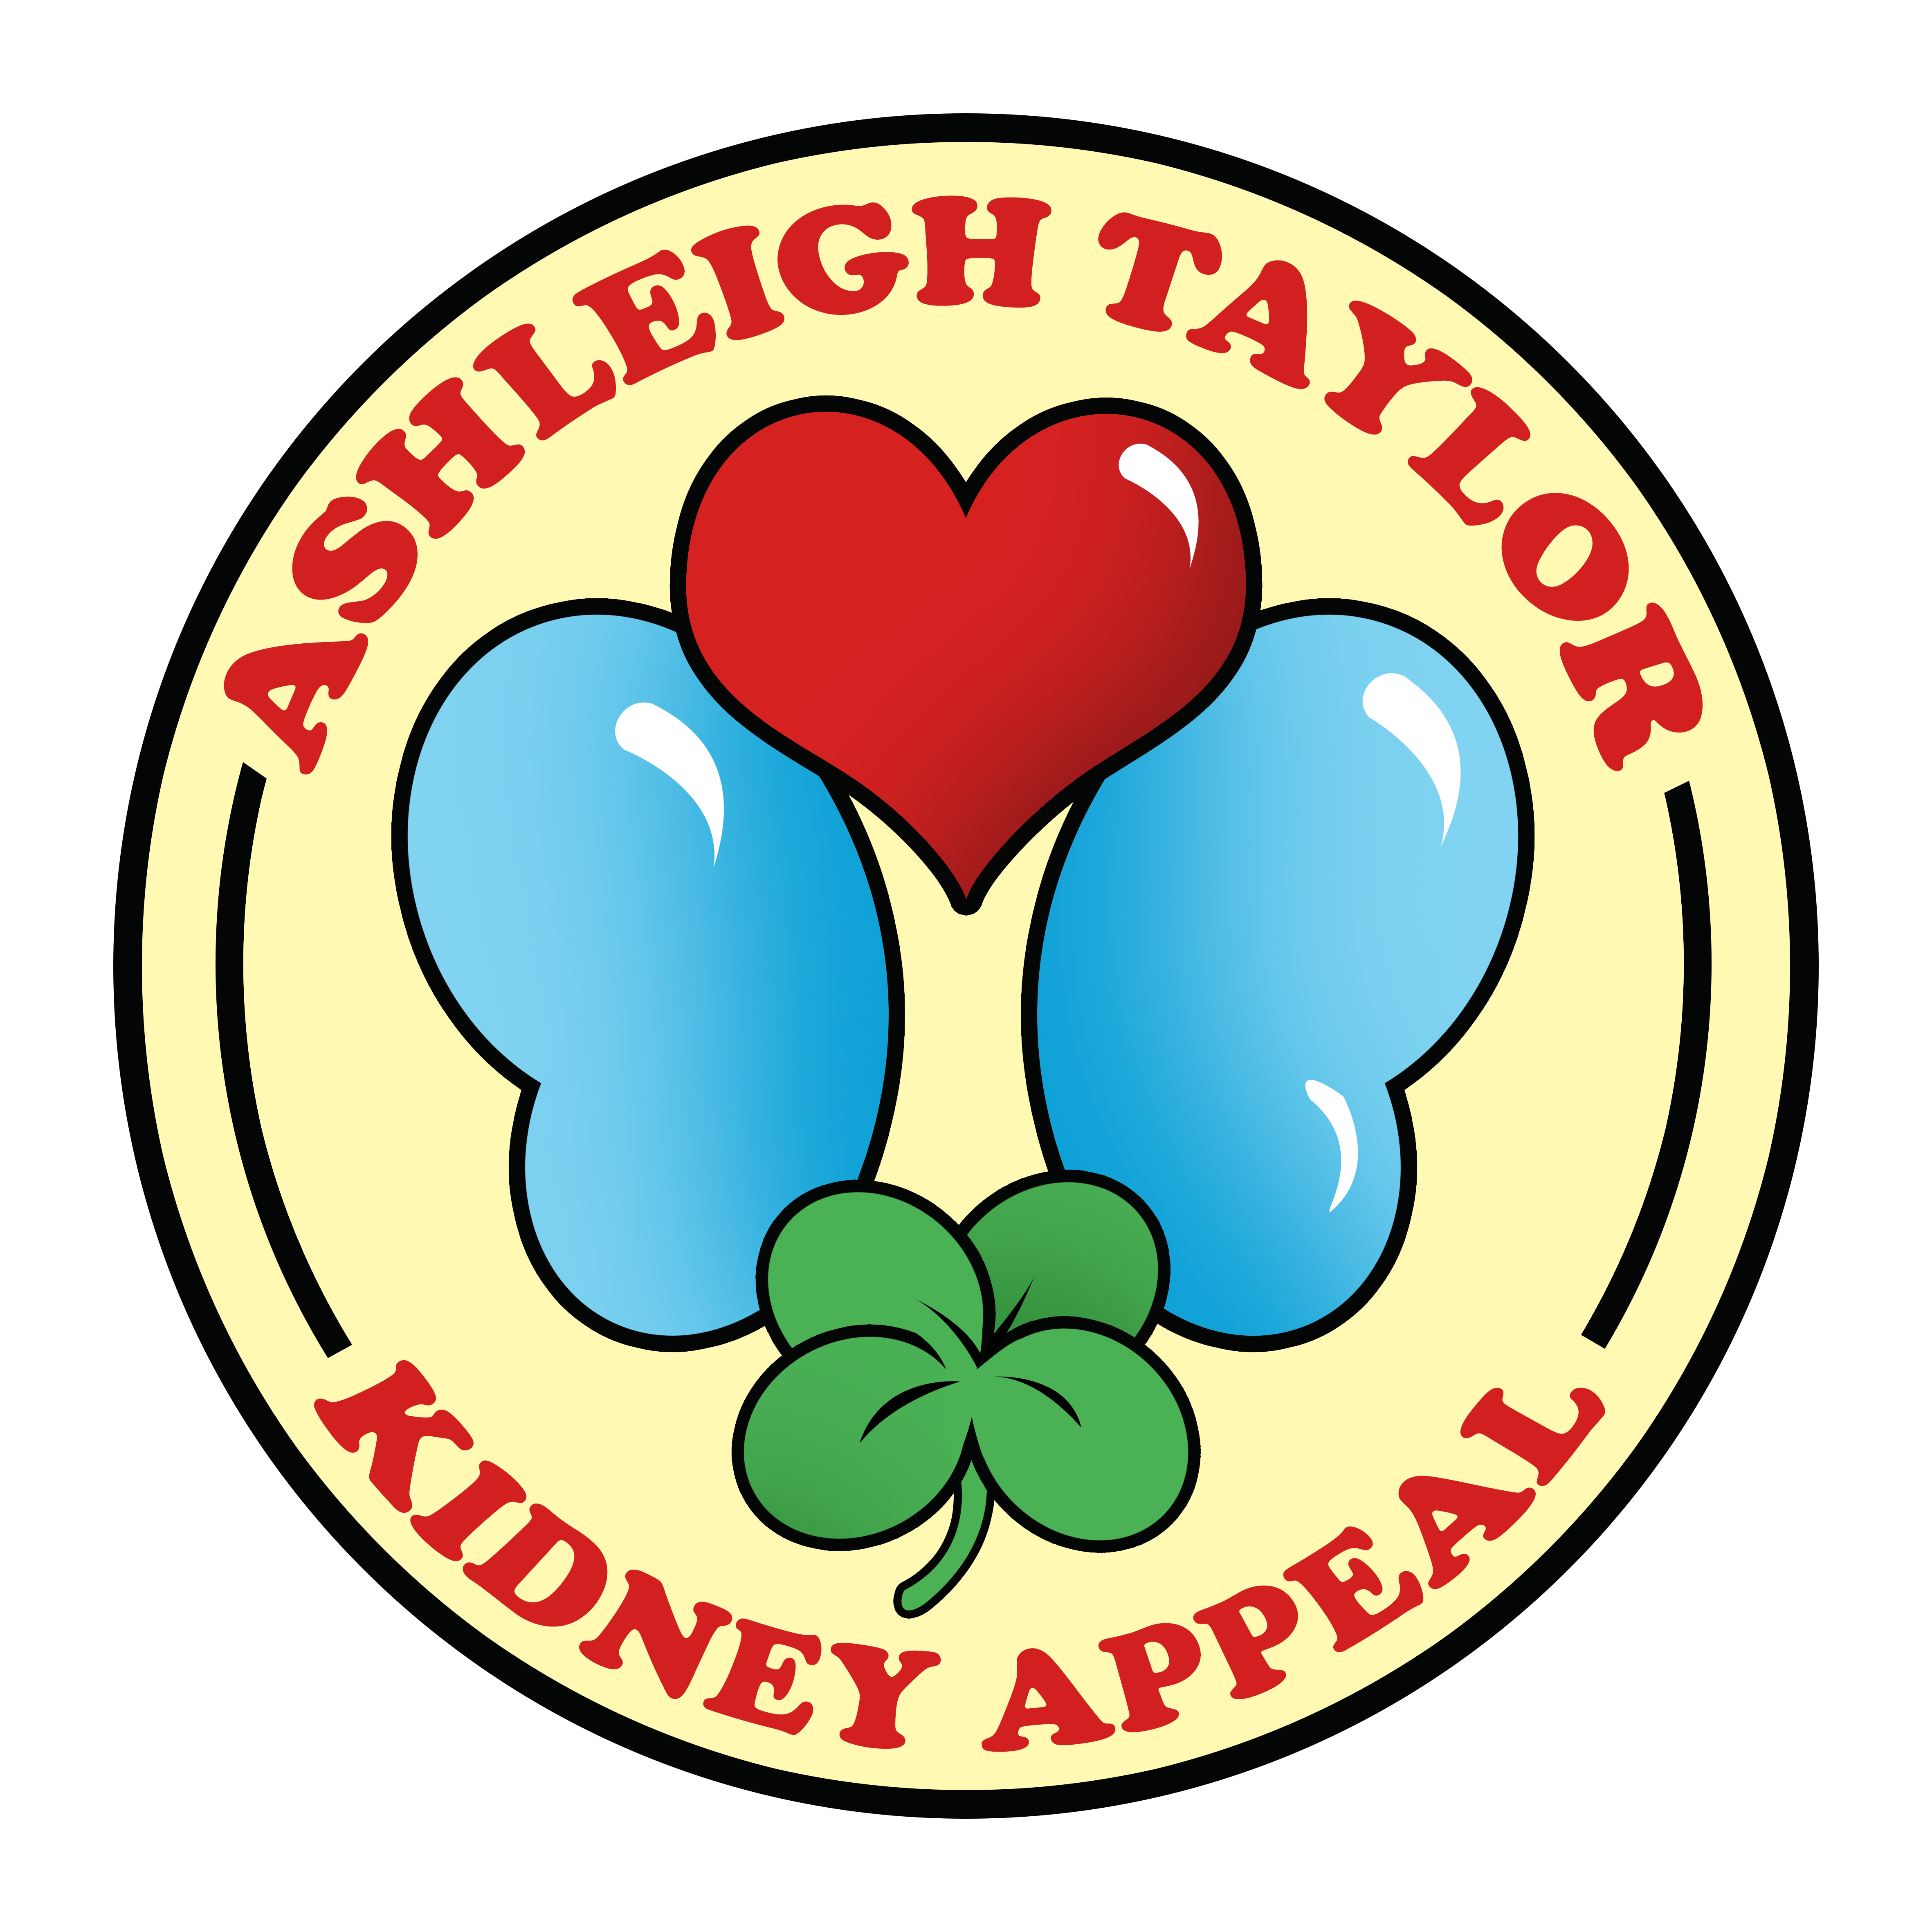 Ashleigh taylor appeal . Kidney clipart nephrotic syndrome